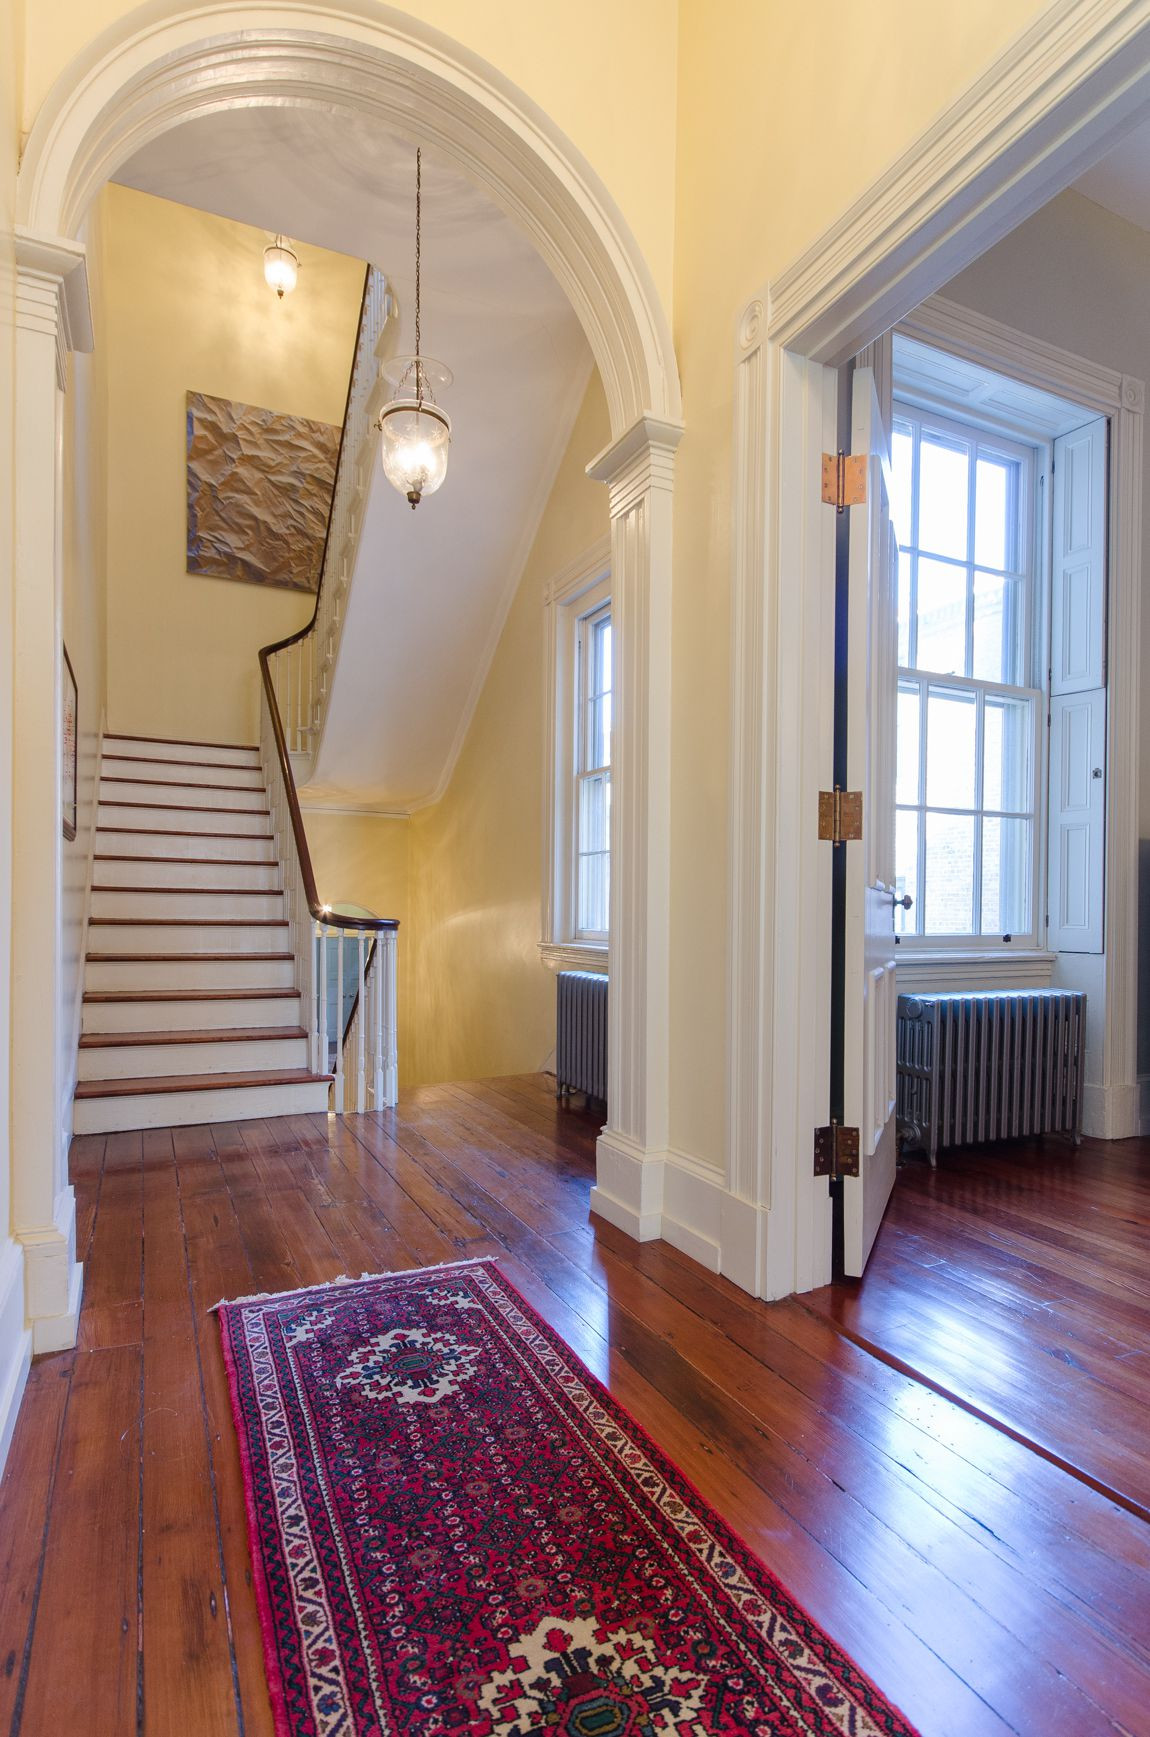 yd hardwood floors usa inc philadelphia pa of historic society hill mansion with george washington ties asks 2 65 with regard to suffice to say the home is listed on the national register of historic places and the philadelphia register of historic places